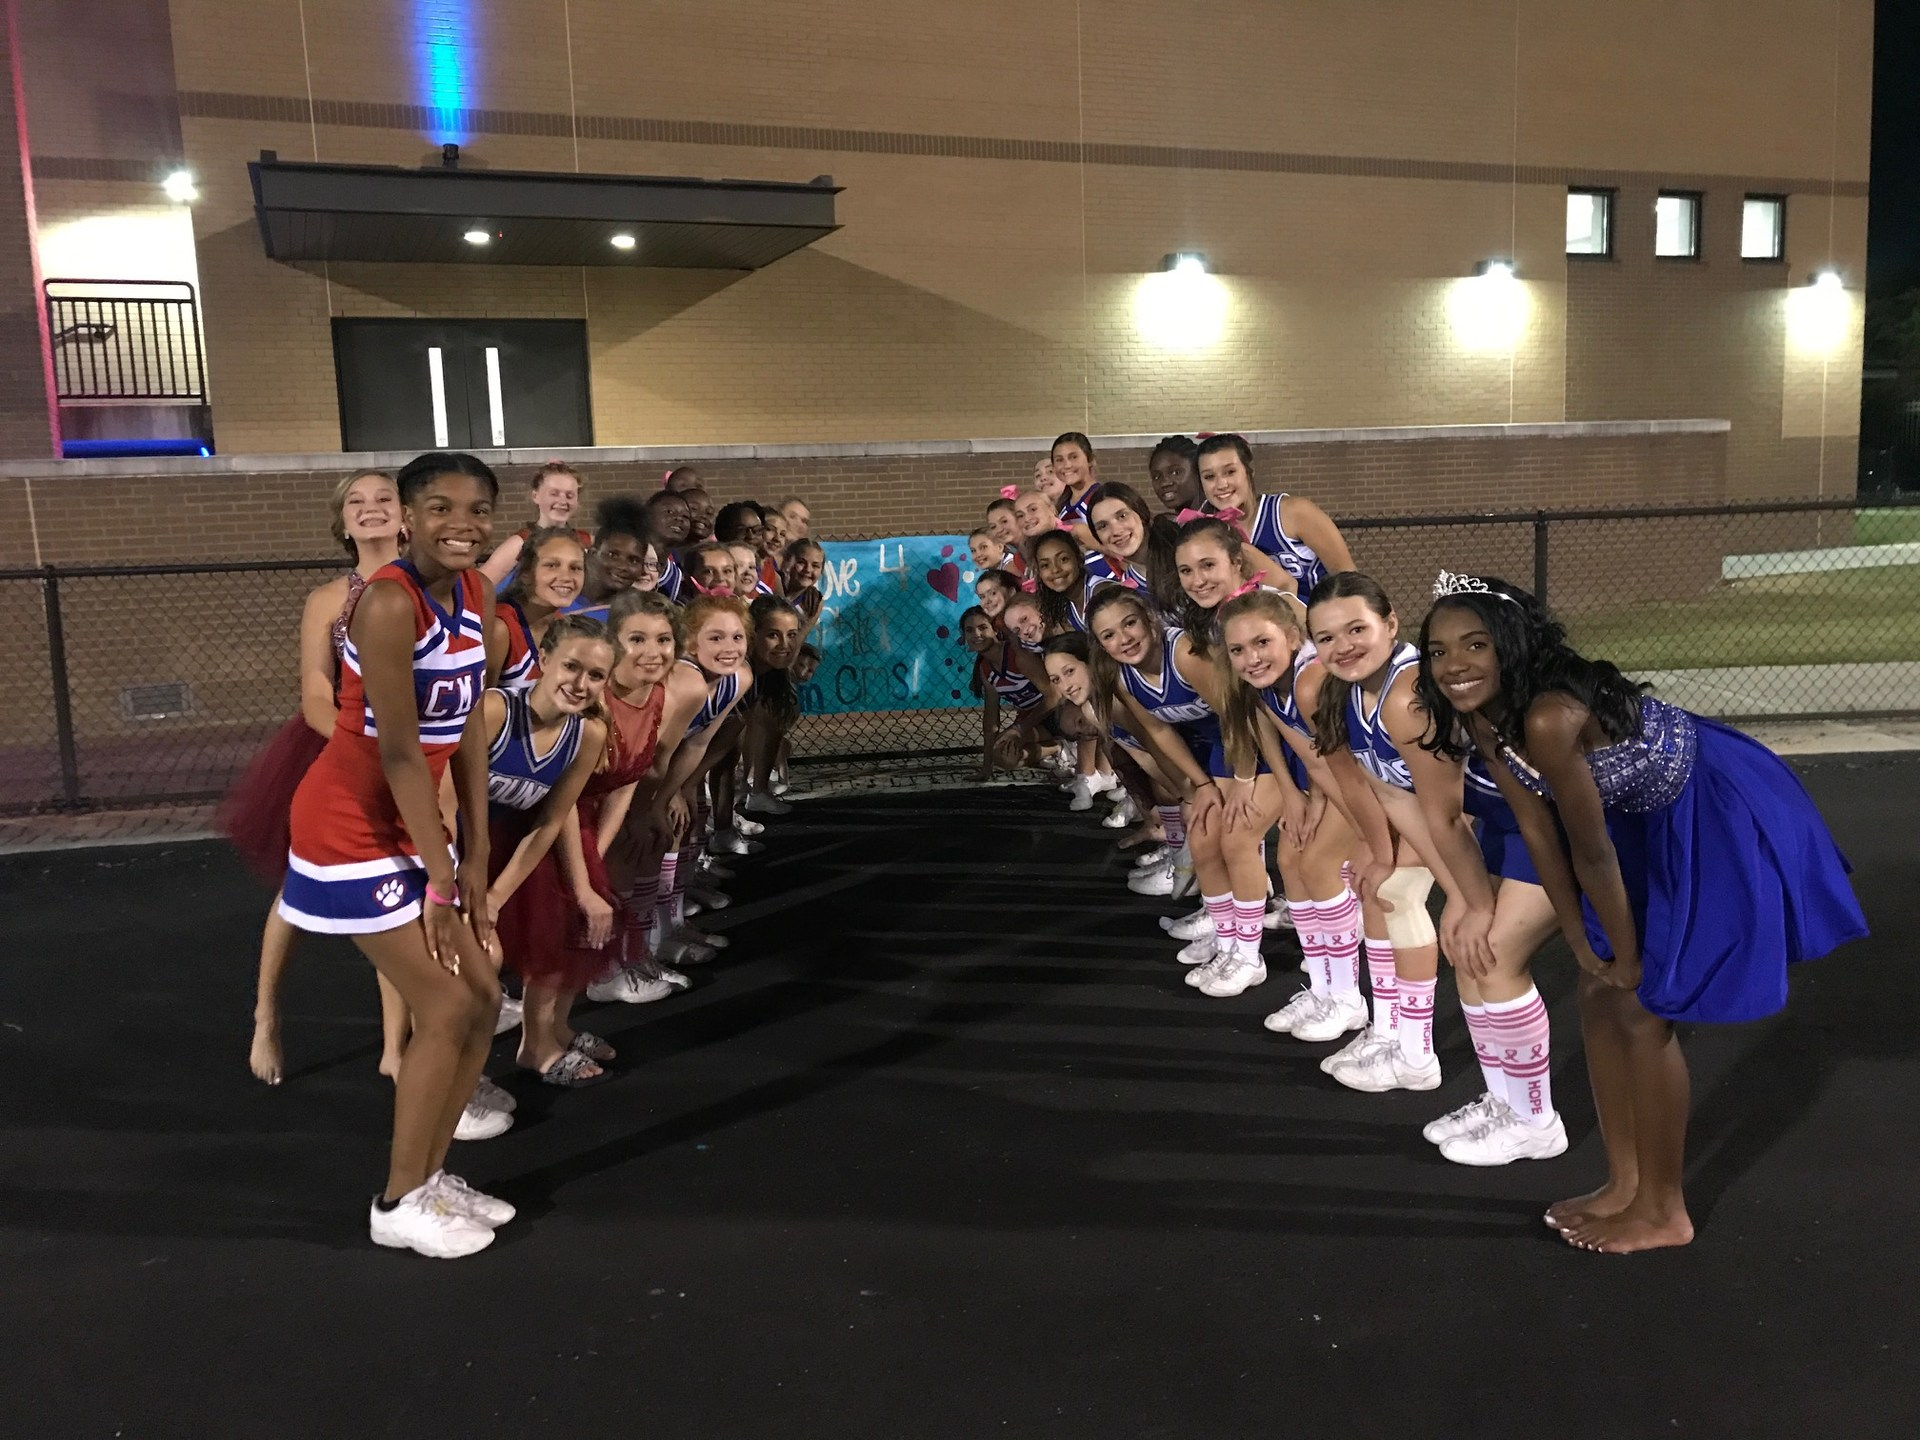 Colmer Middle School Cheerleaders love Sophia Myers and our OS Friends! #LoveforSophia #Fight DIGP